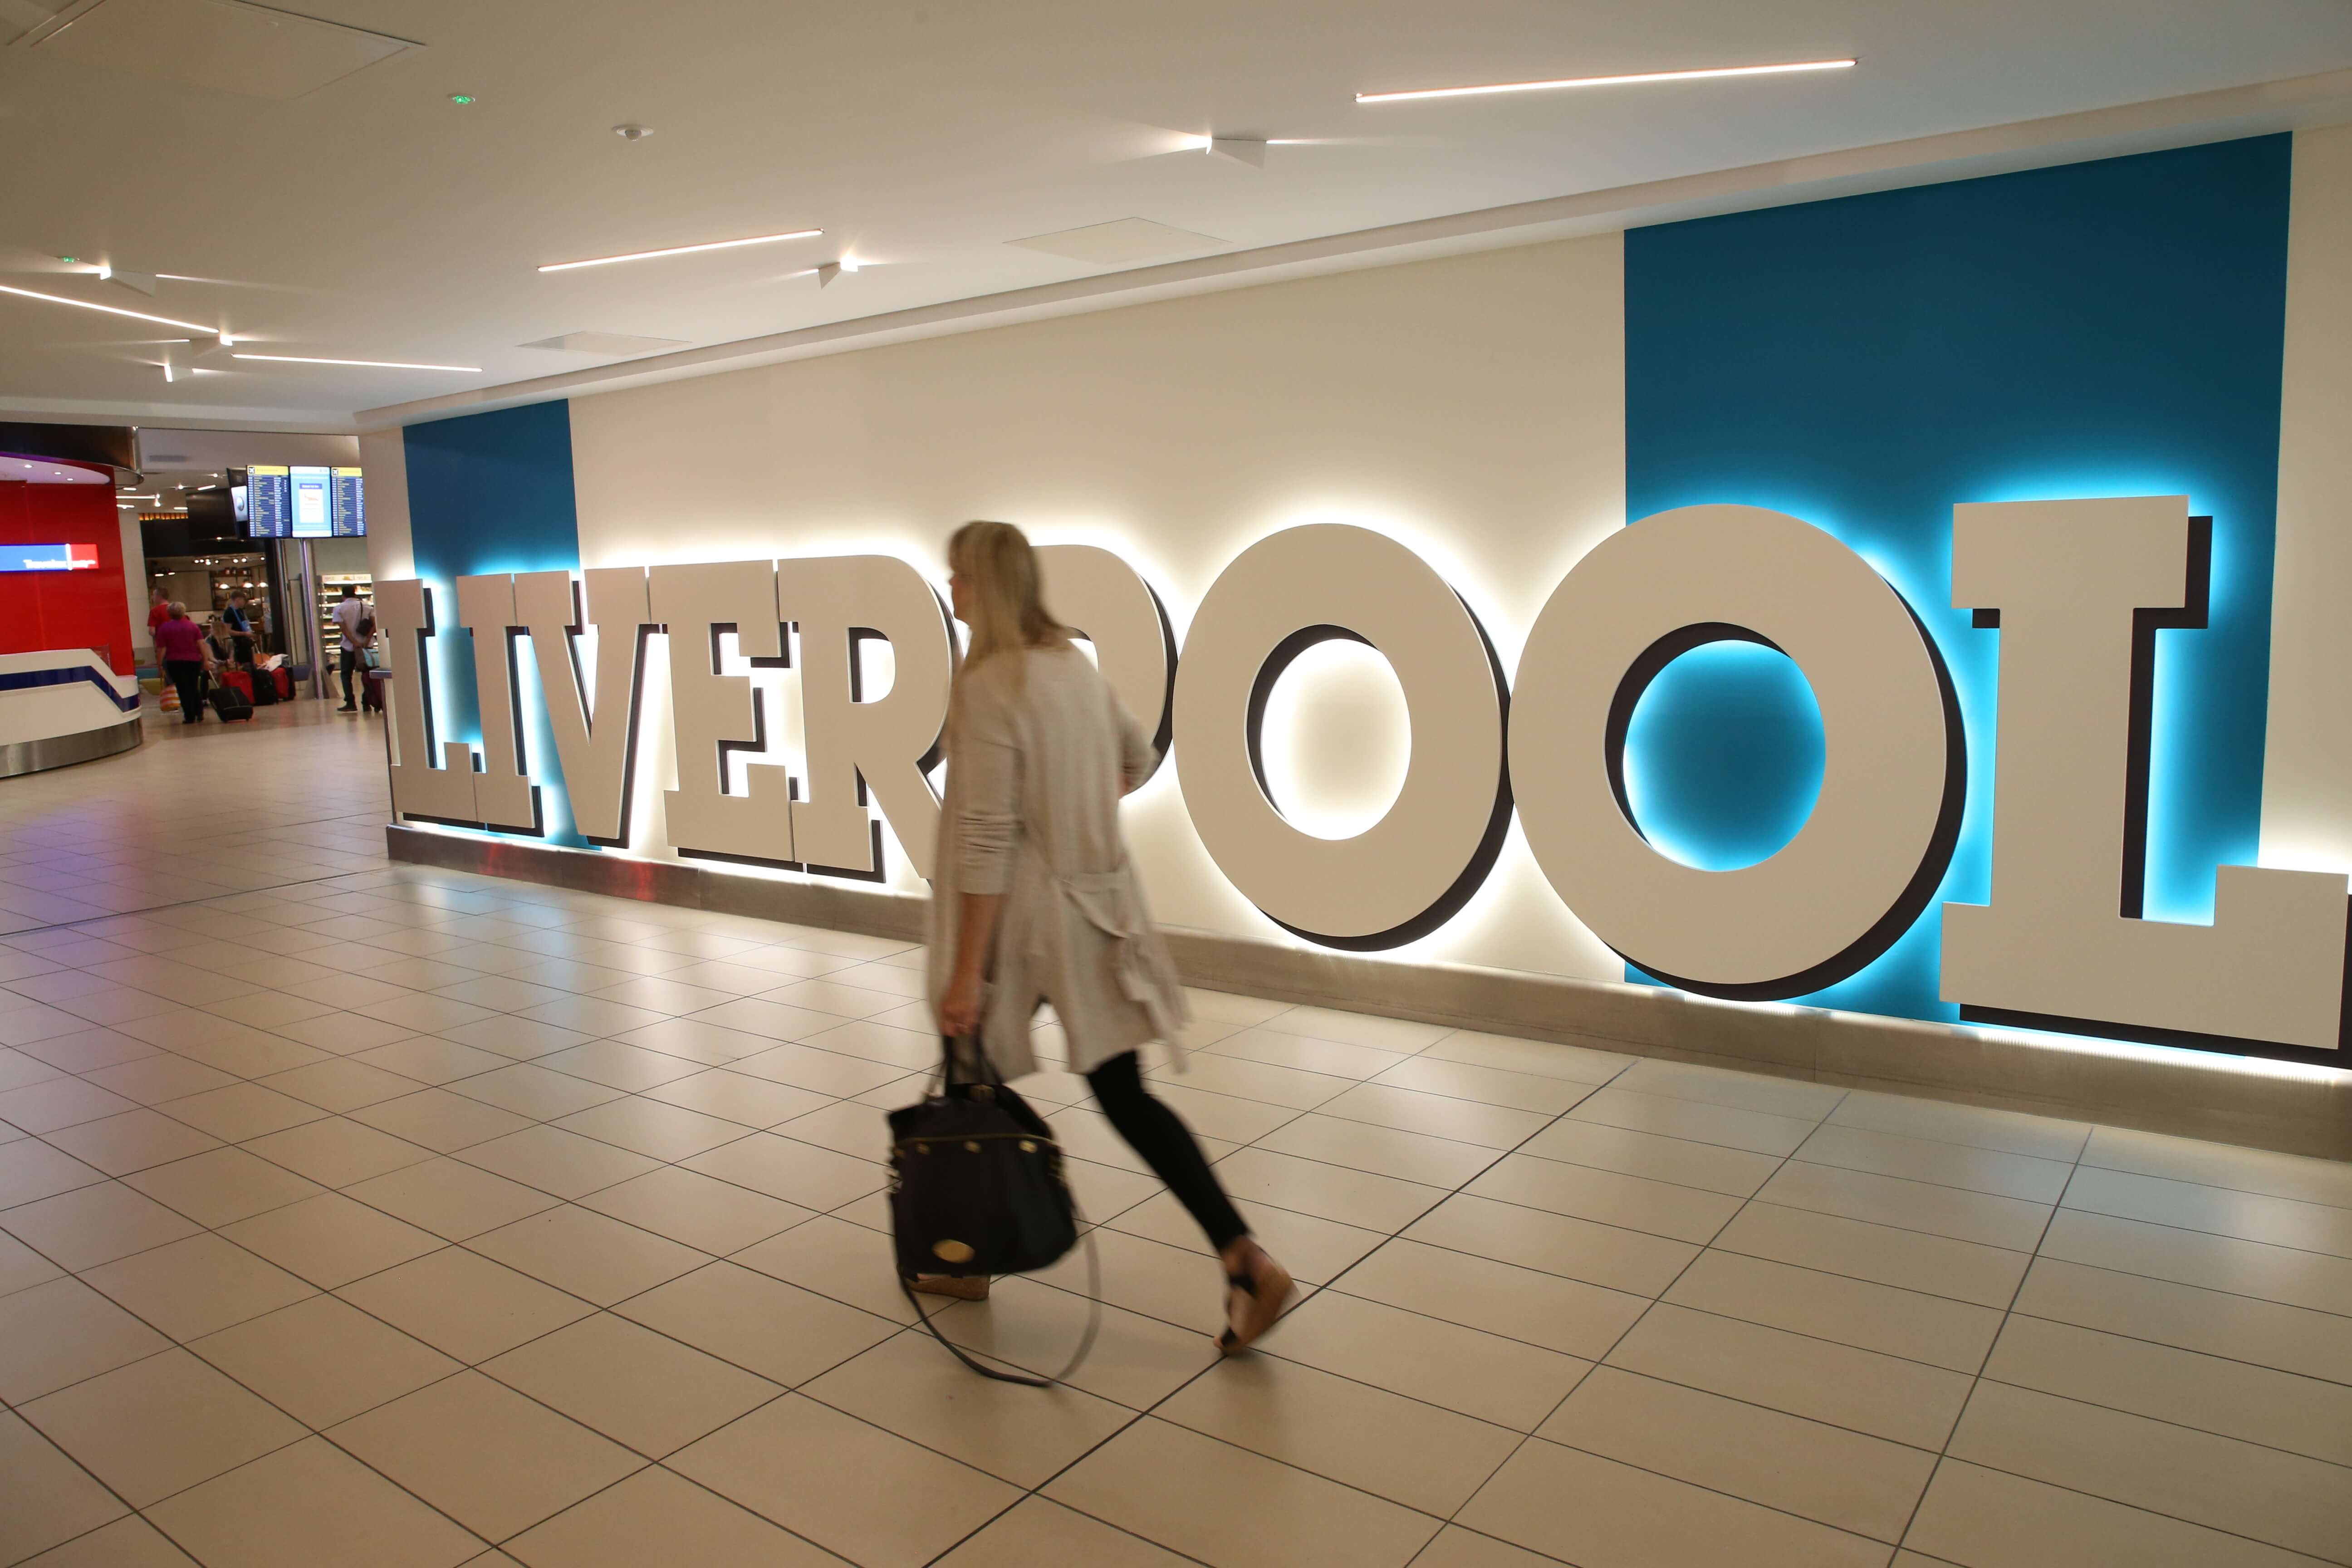 Liverpool John Lennon Airport - The Guide Liverpool